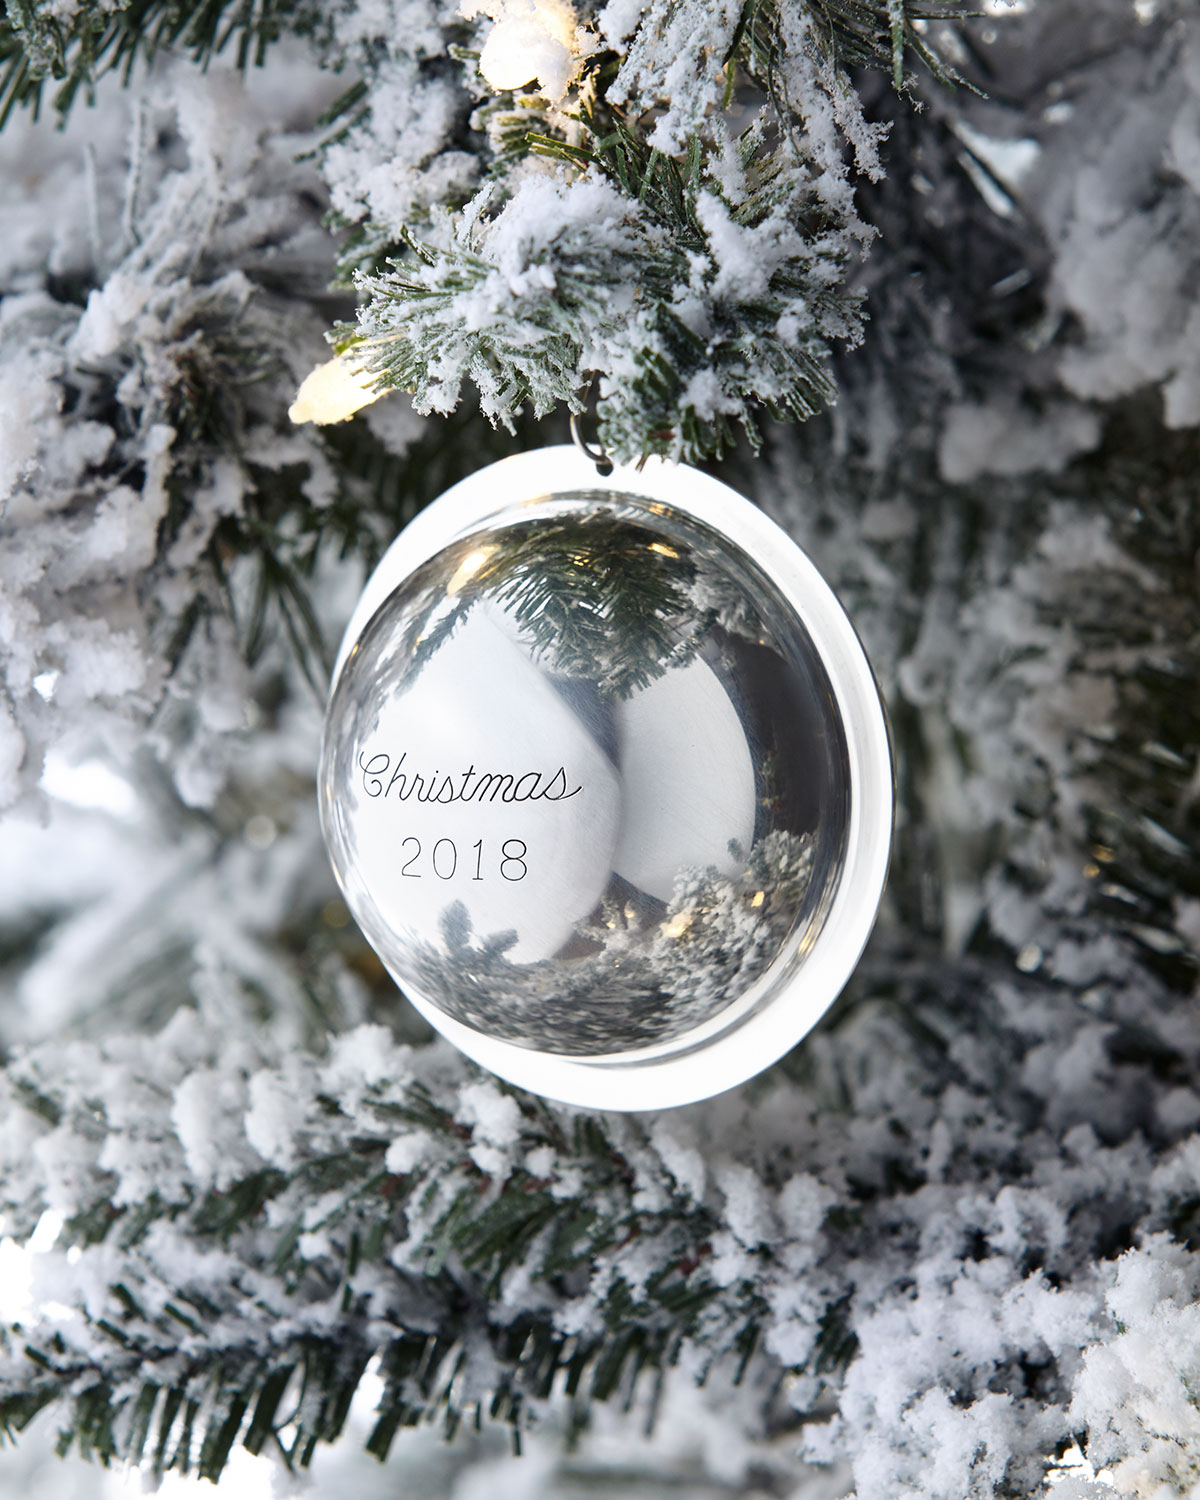 Wedding Gift Stores Nyc: J T Inman Co 2018 Annual-Edition Sterling Silver Christmas